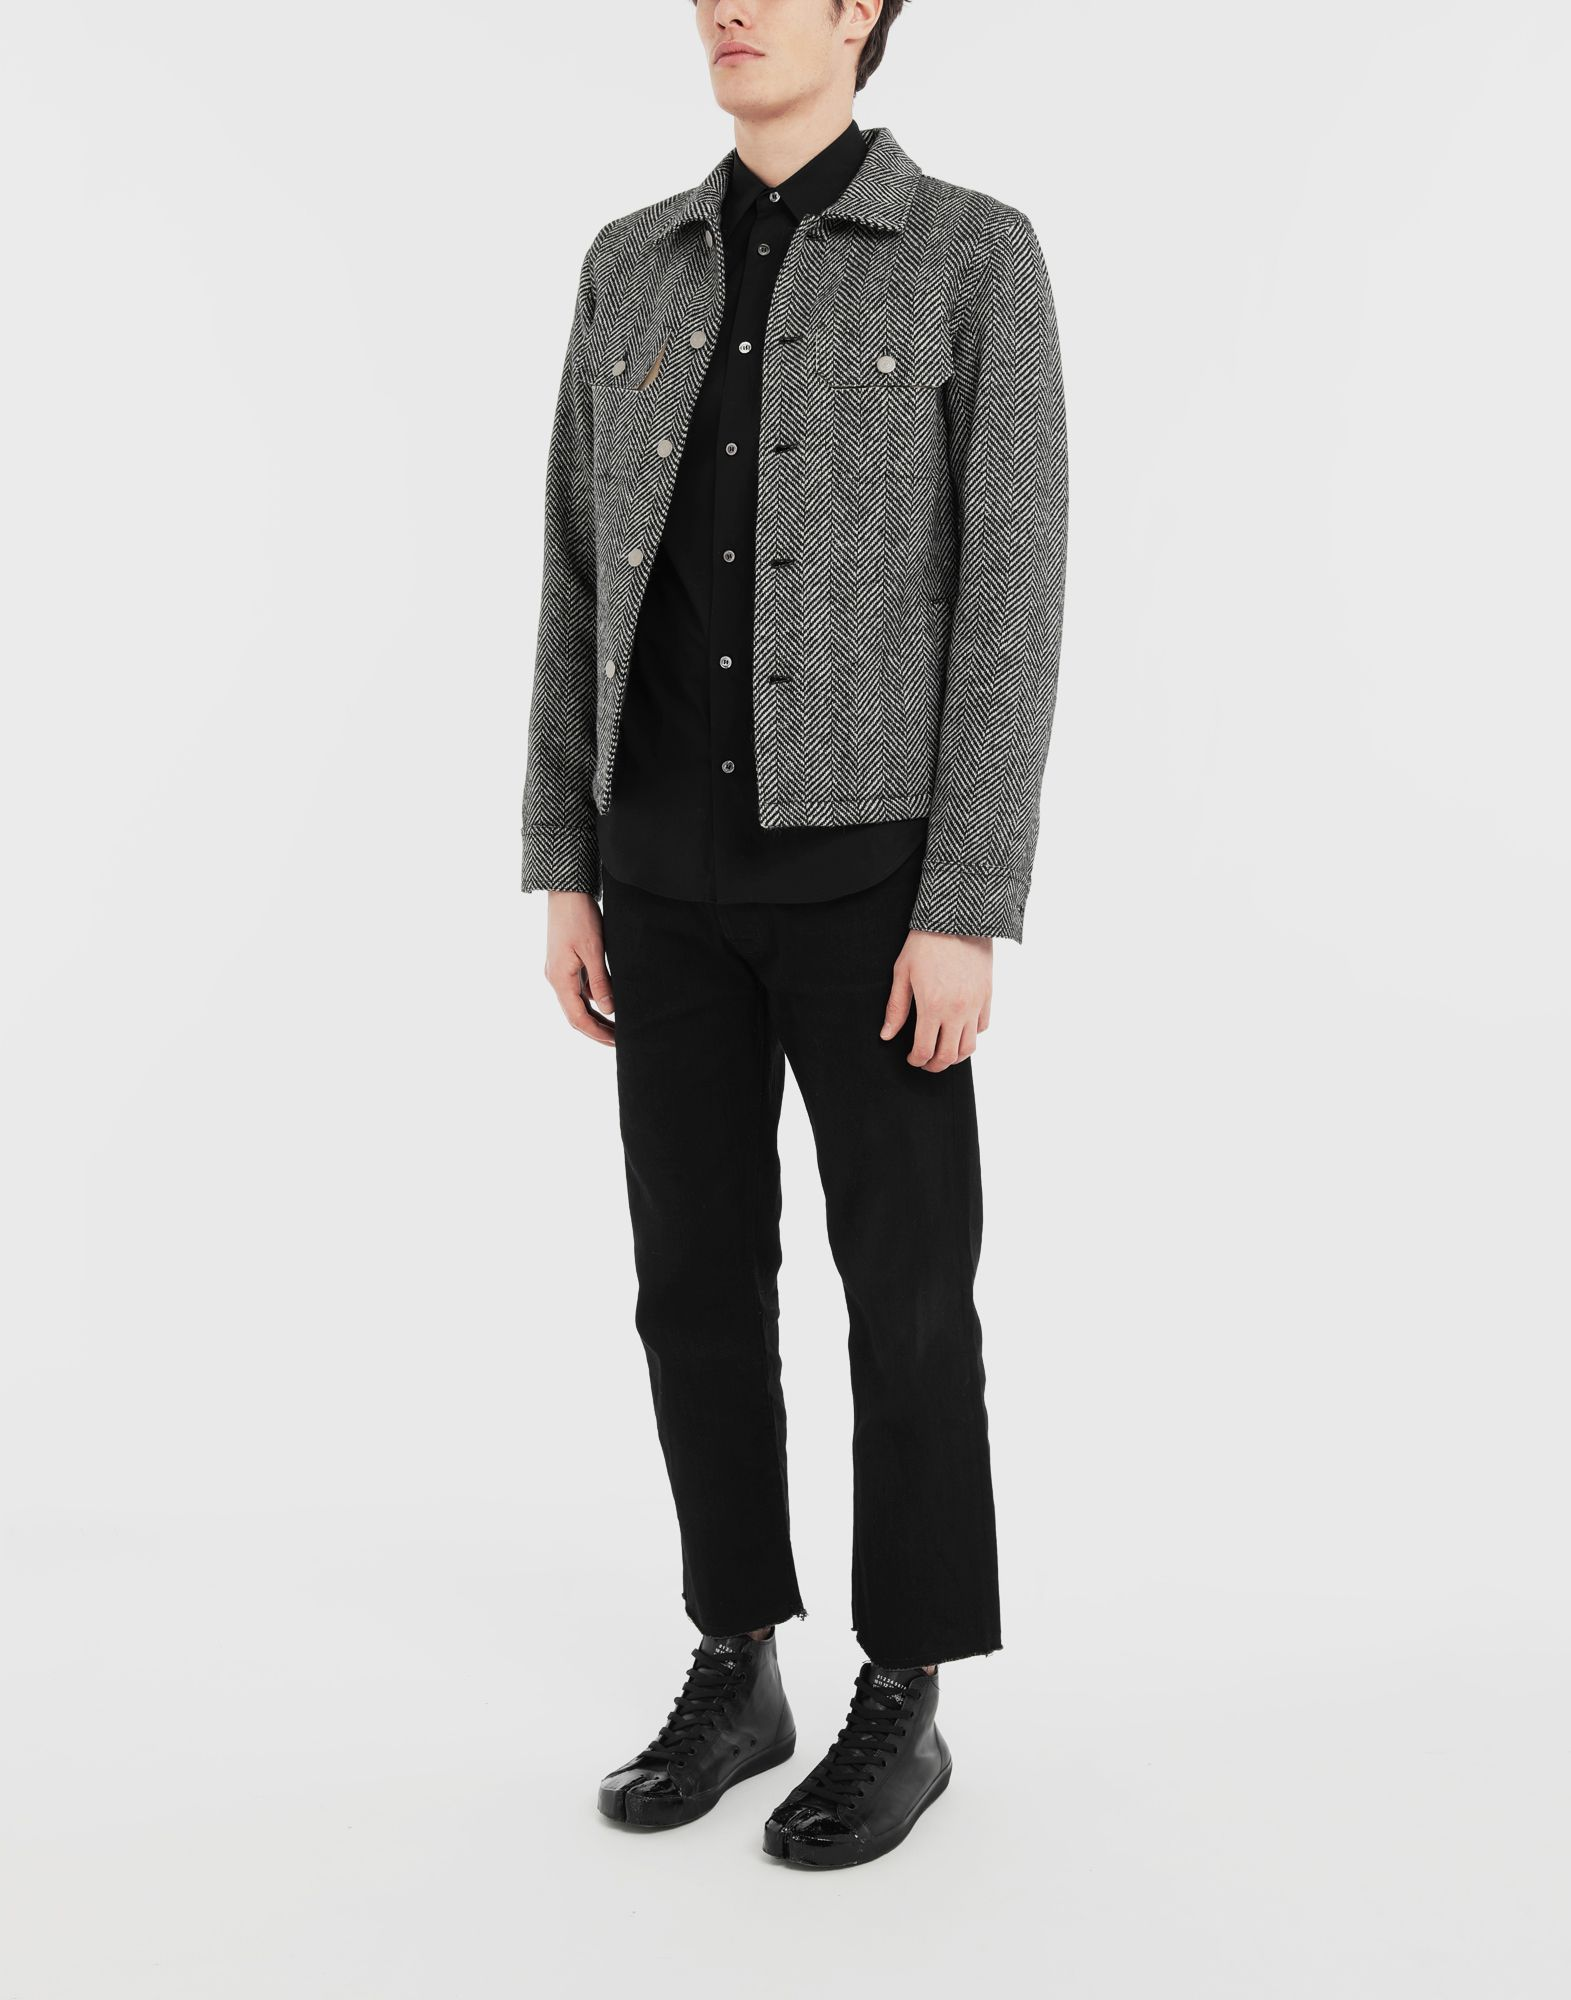 MAISON MARGIELA Décortiqué herringbone jacket Light jacket Man d